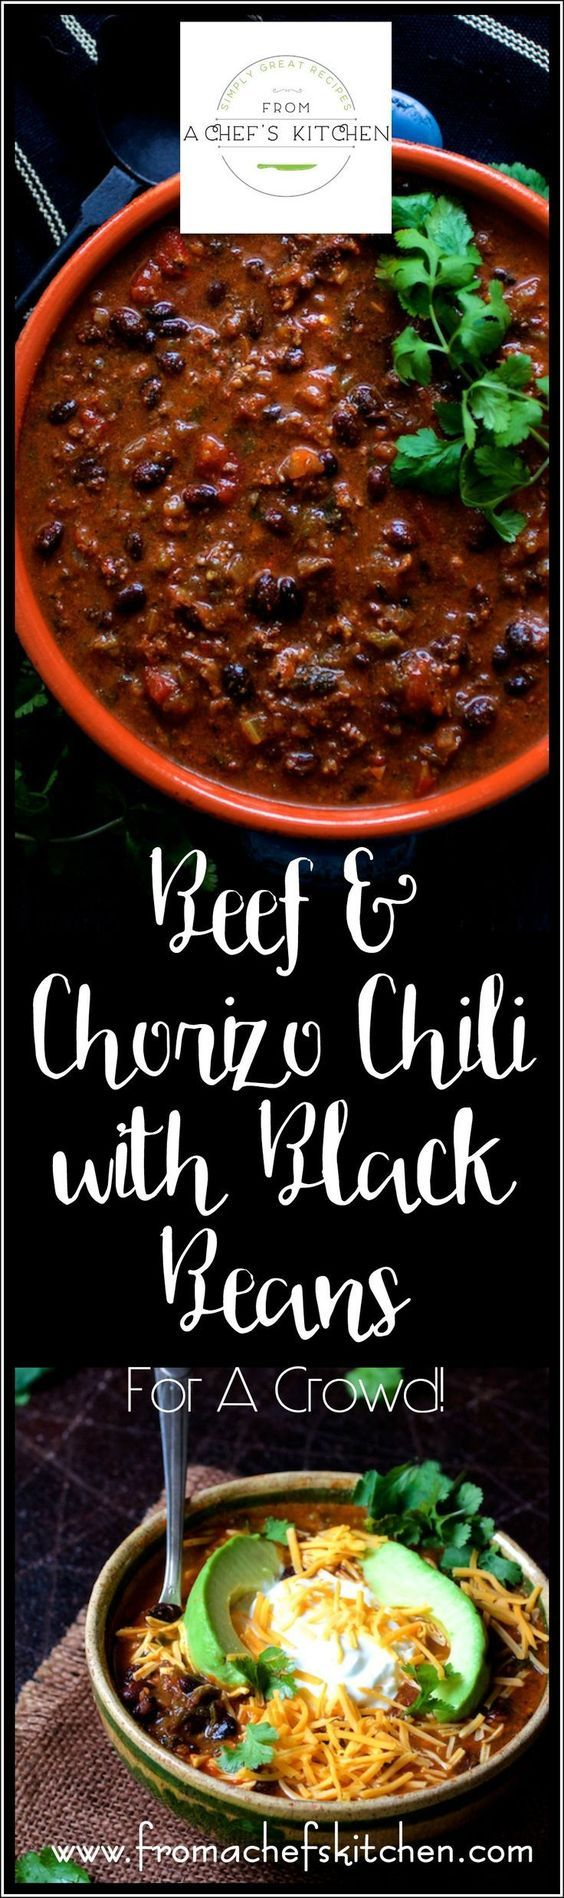 Beef and Chorizo Chili with Black Beans is scaled for a crowd and perfect for a party! Beef, chorizo, red wine and Poblano peppers star in this hearty chili